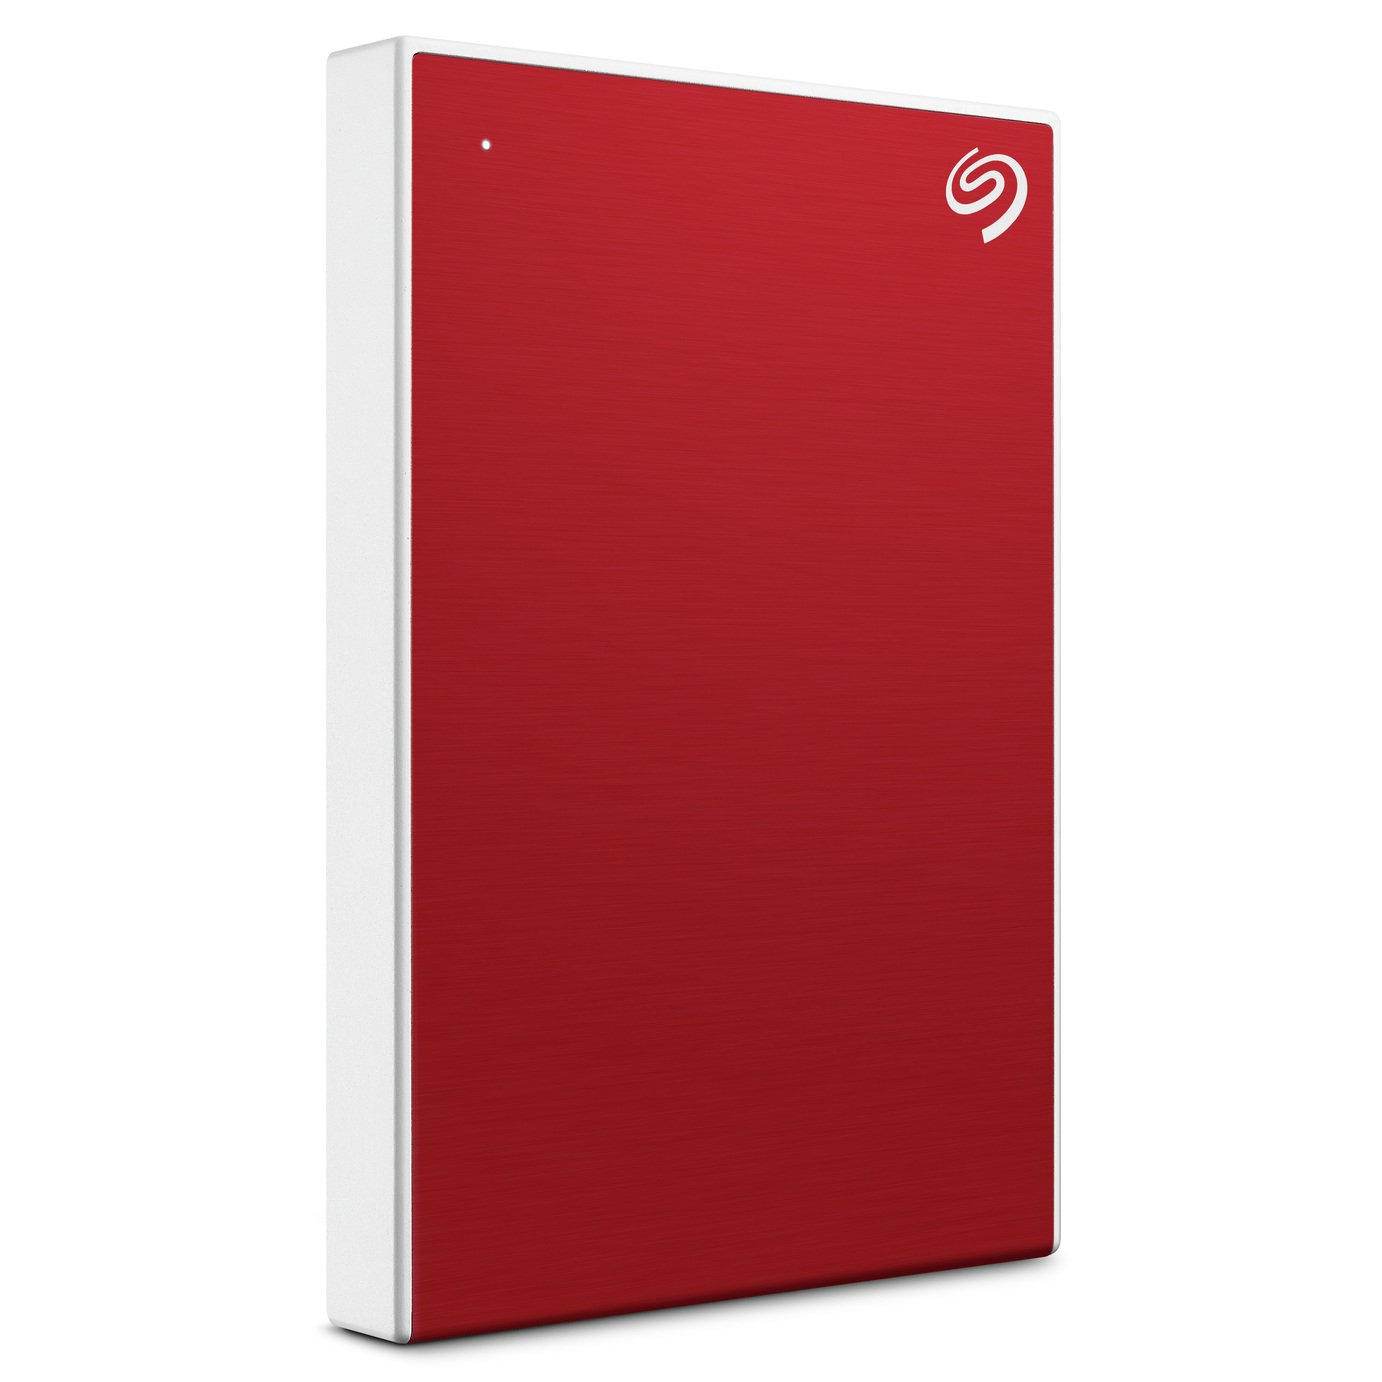 Seagate Backup Plus 1TB Portable Hard Drive - Red